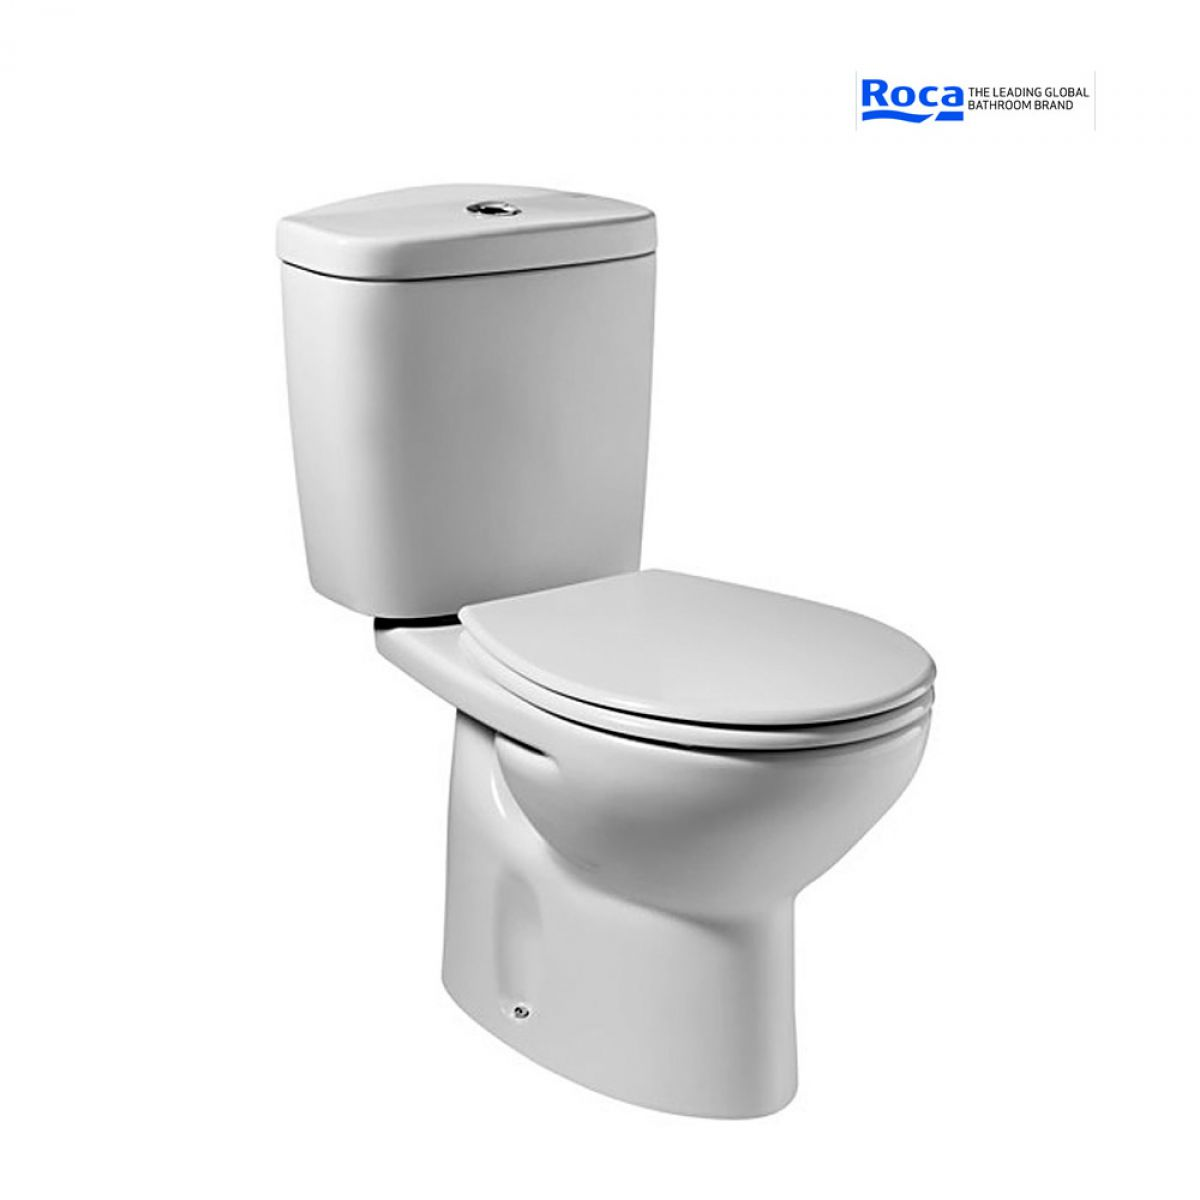 roca laura close coupled toilet uk bathrooms. Black Bedroom Furniture Sets. Home Design Ideas